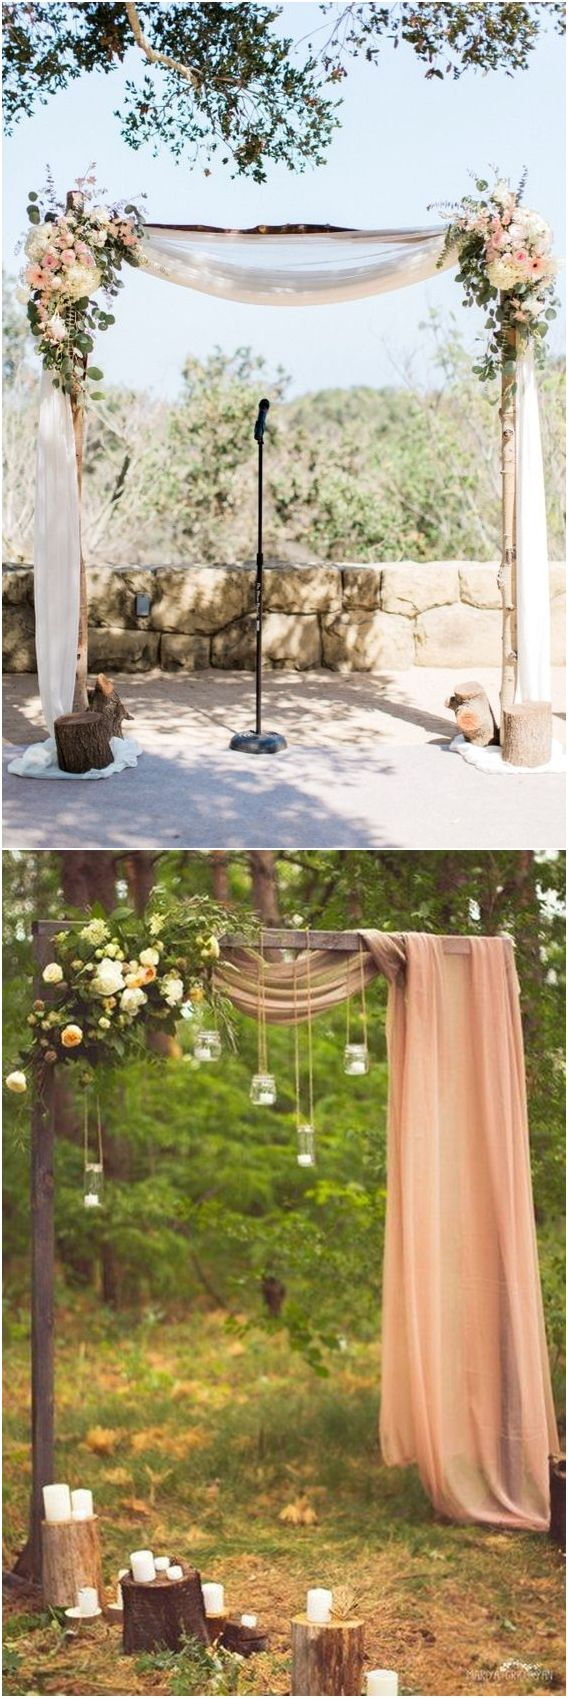 Ksl wedding dress   Amazing Wedding Ceremony Arches and Altars To Get Inspired